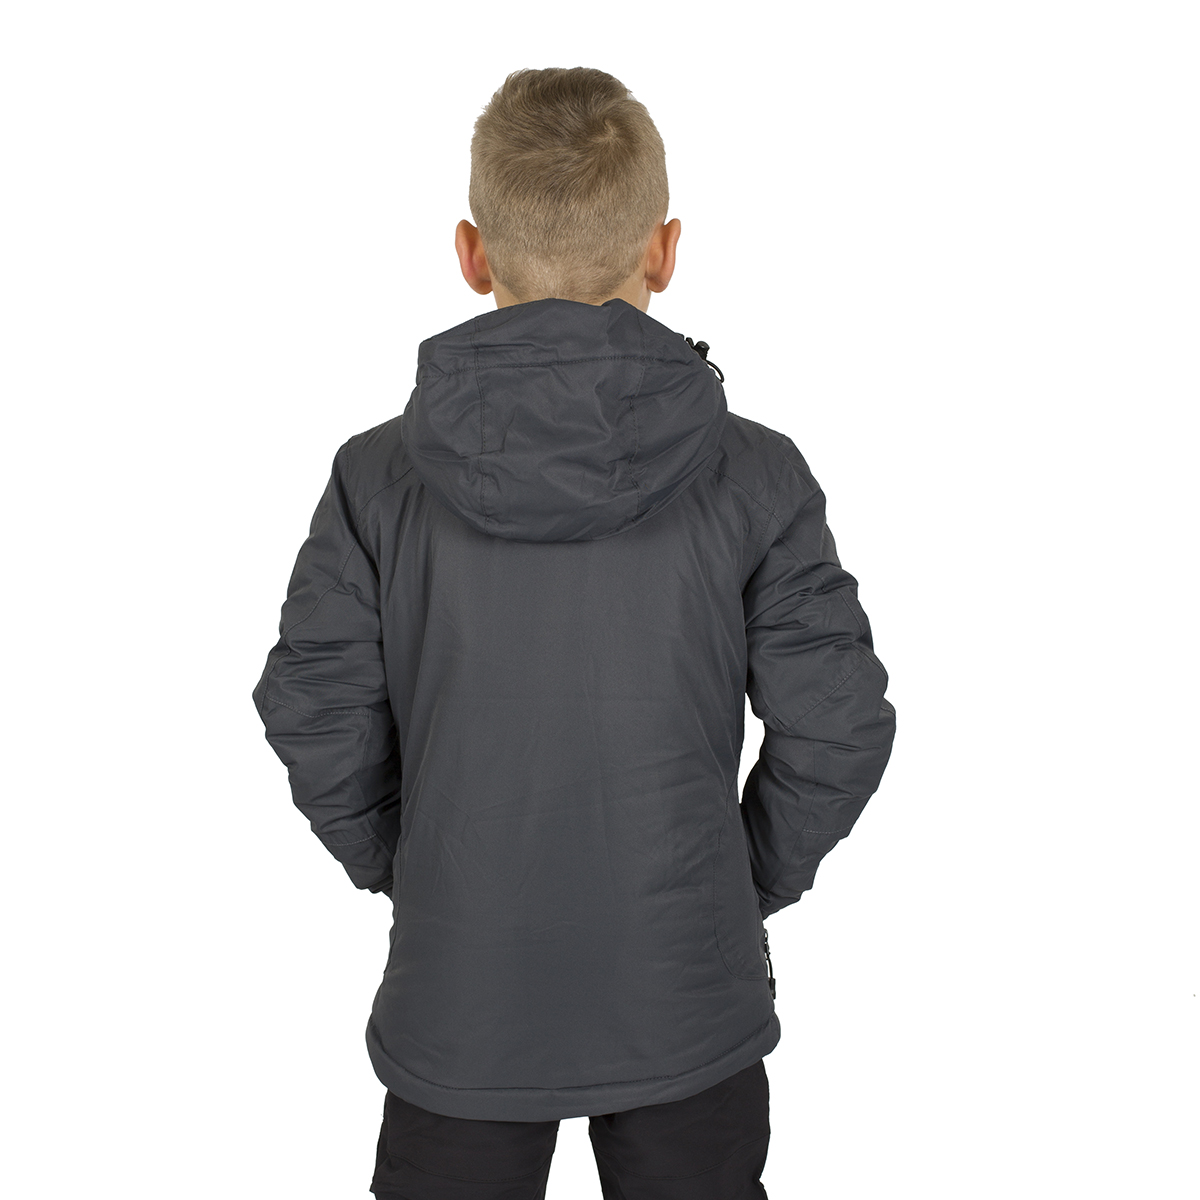 NALUNS KIDS PADDED JACKET WITH HOOD GREY